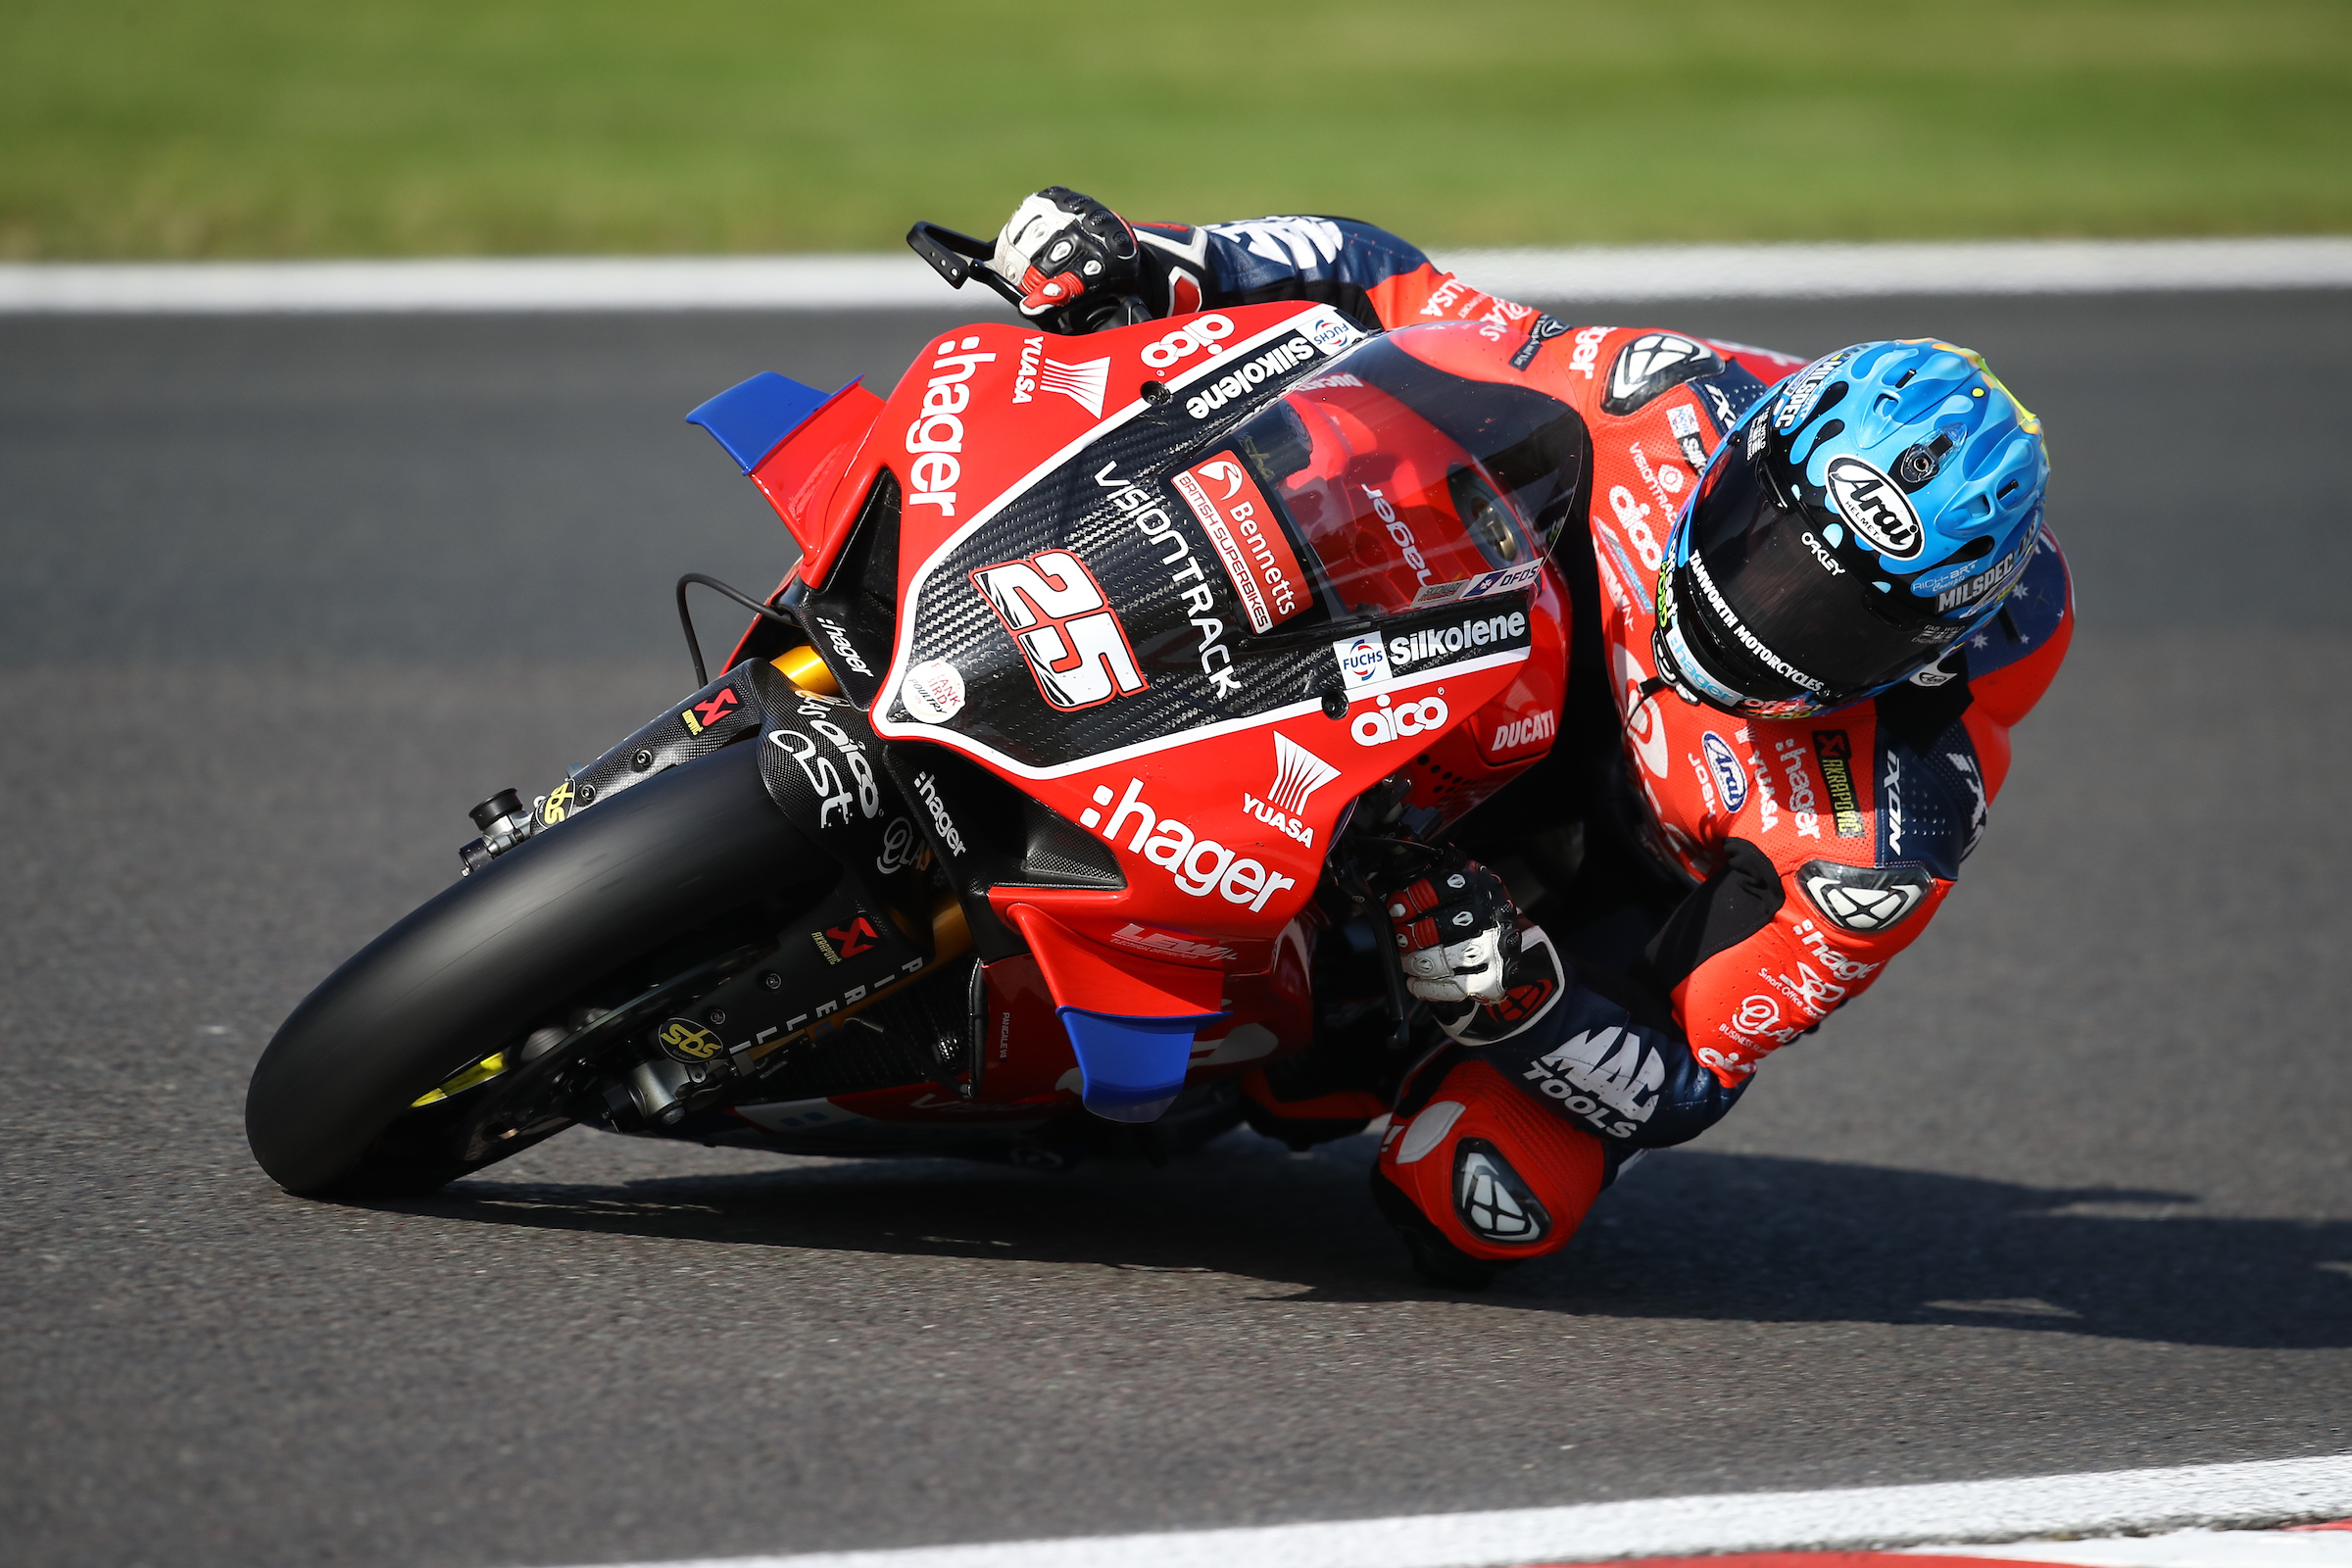 Yuasa powers Josh Brookes and Ducati to British Superbike championship victory